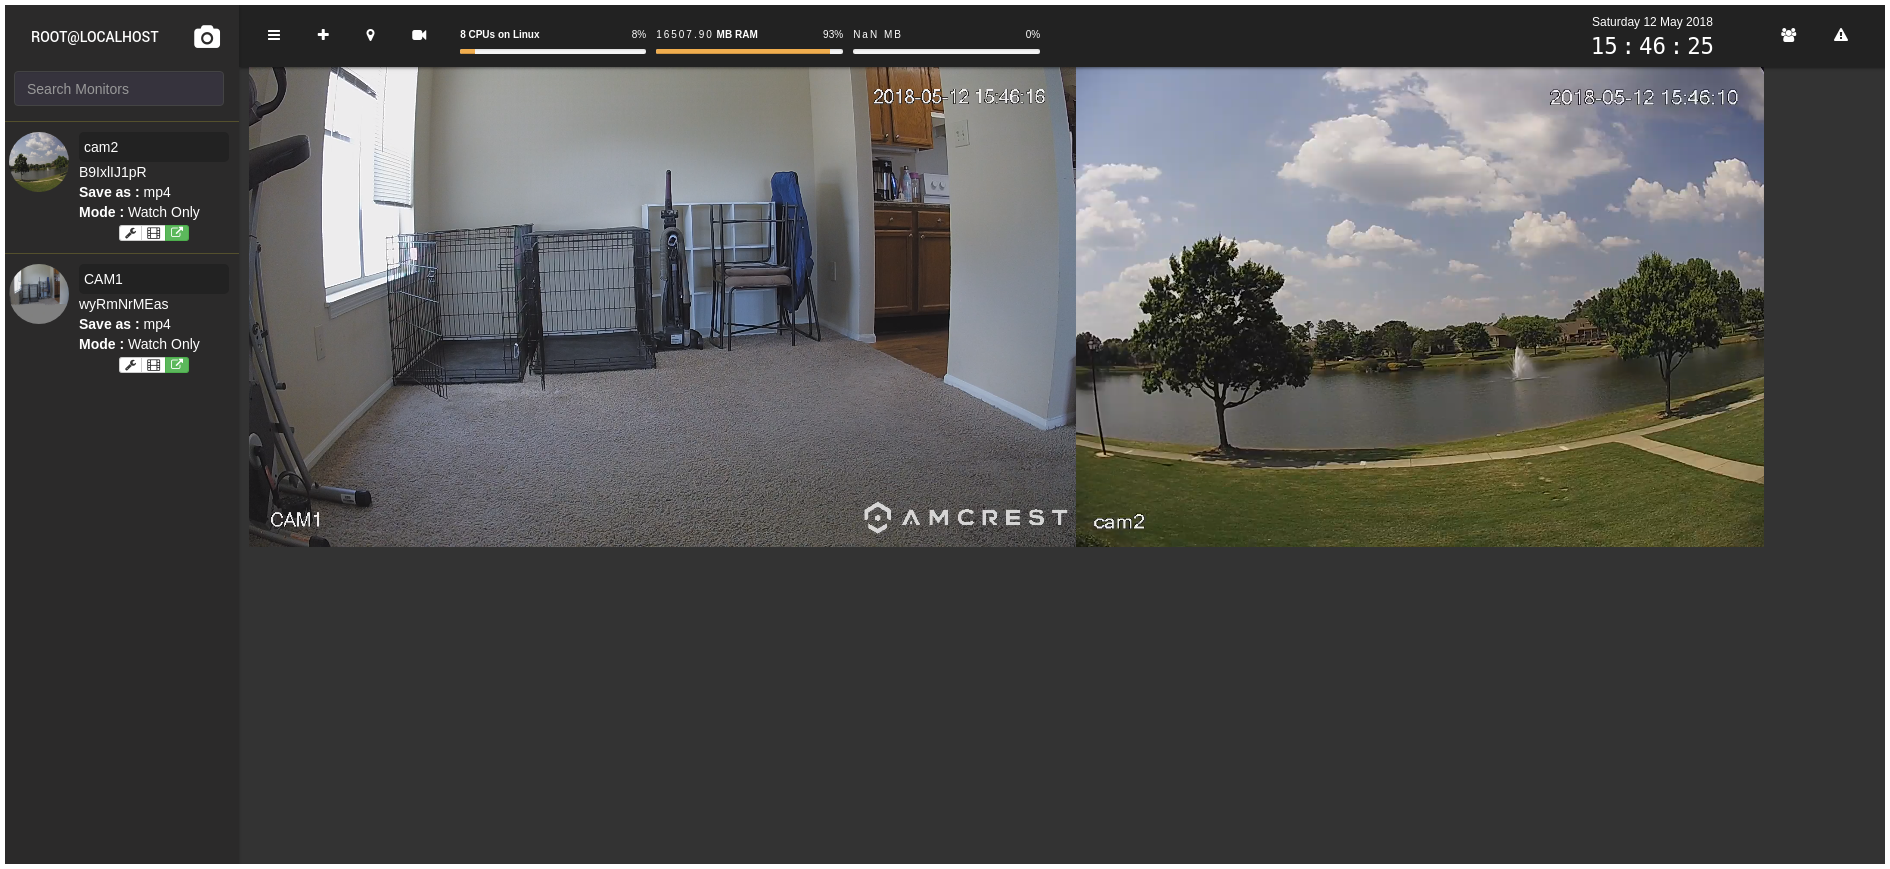 Linux Surveillance Camera Software Evaluation - Jason Antman's Blog